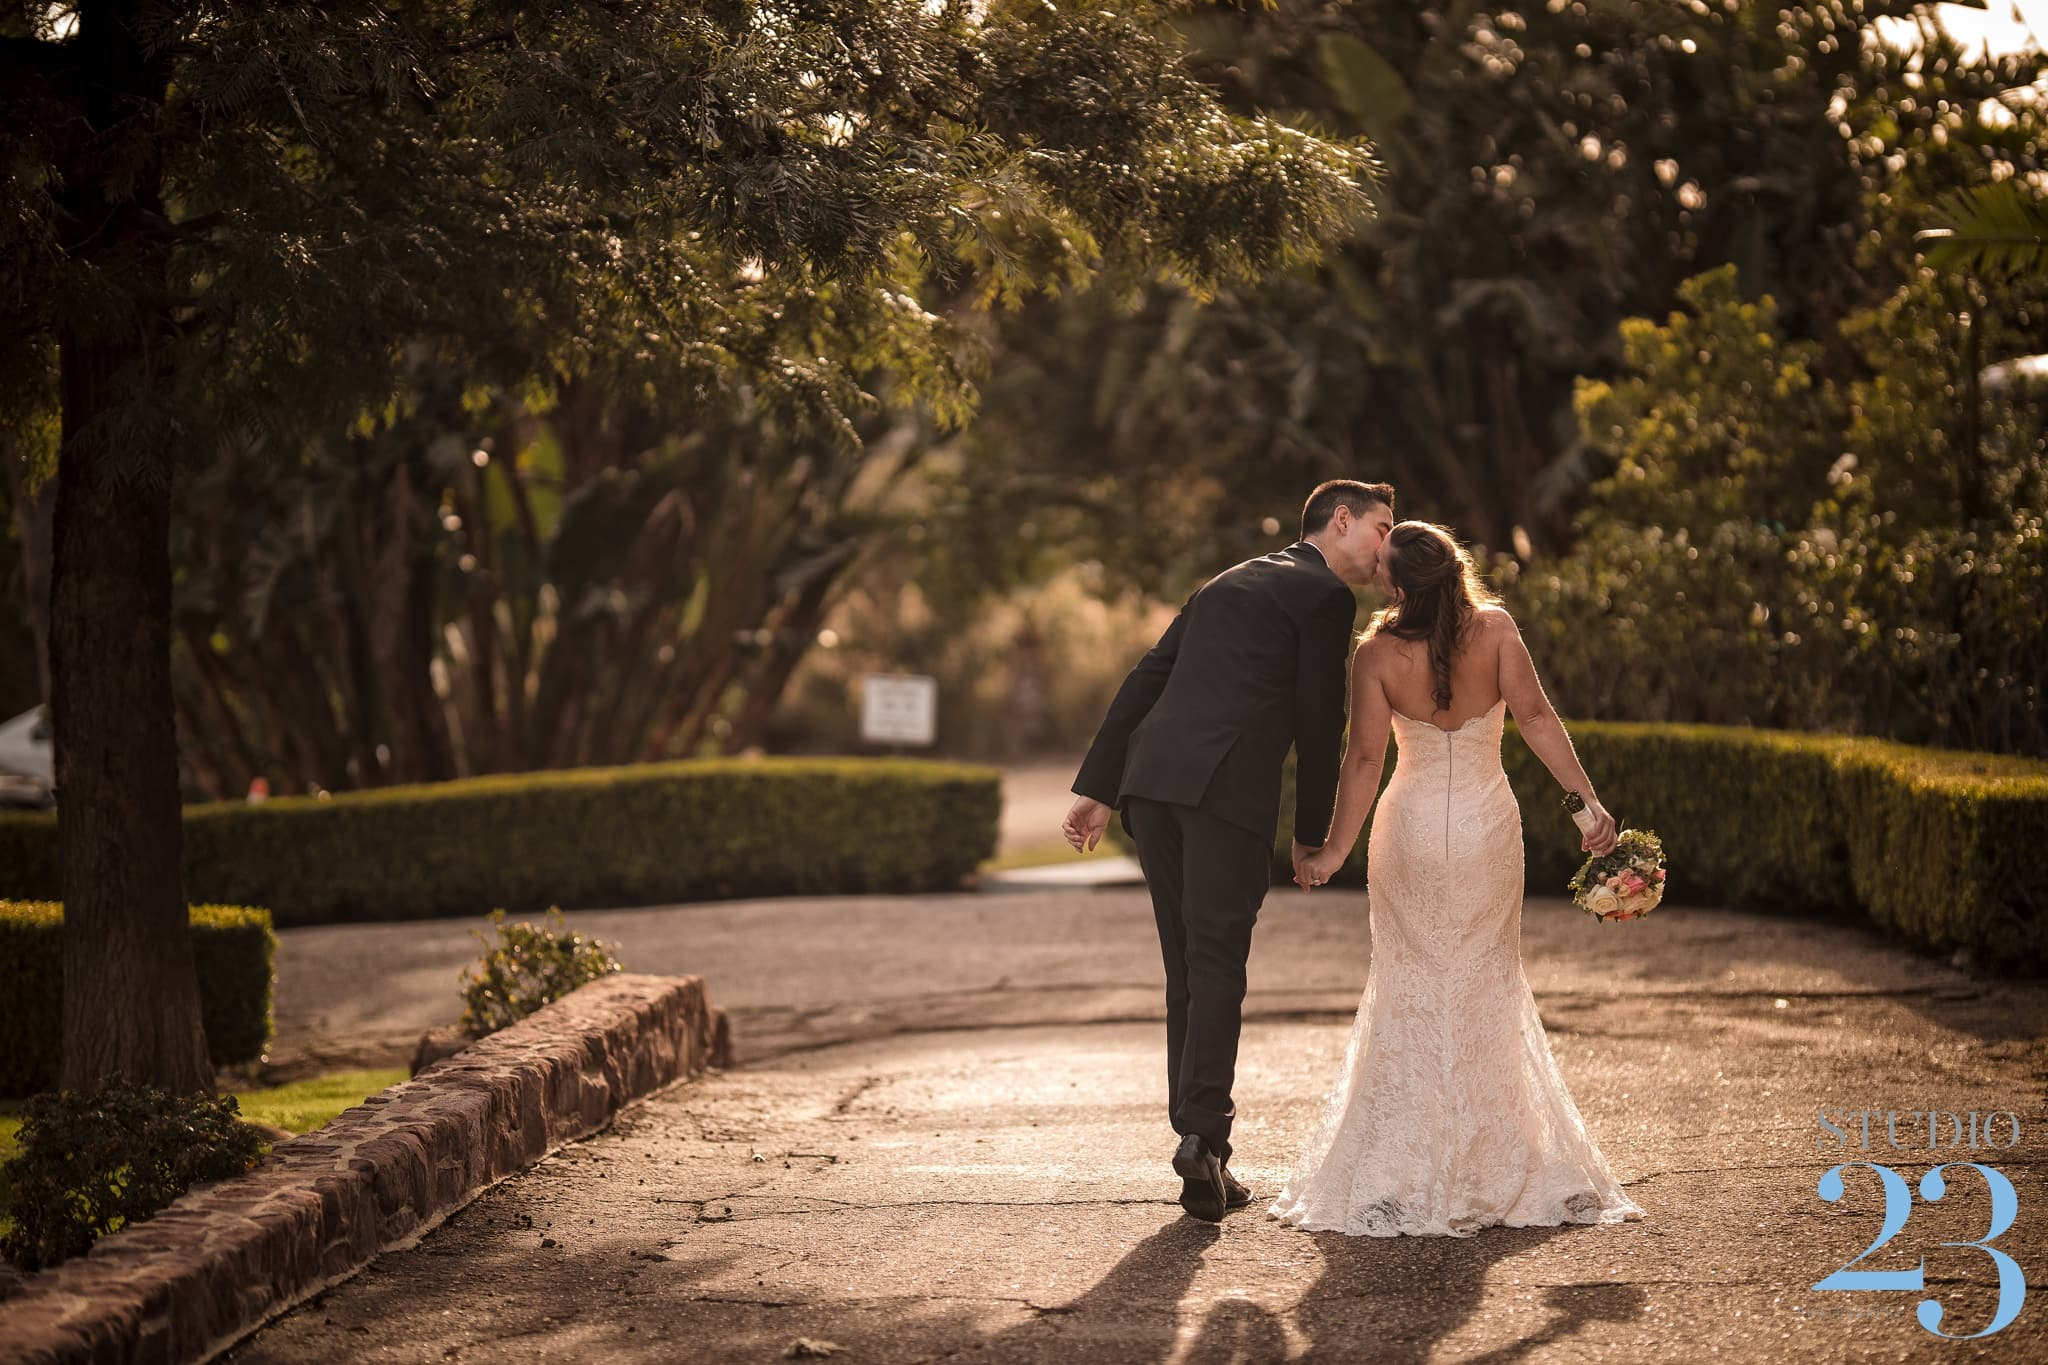 A Stunning Winter Wedding at The Newhall Mansion